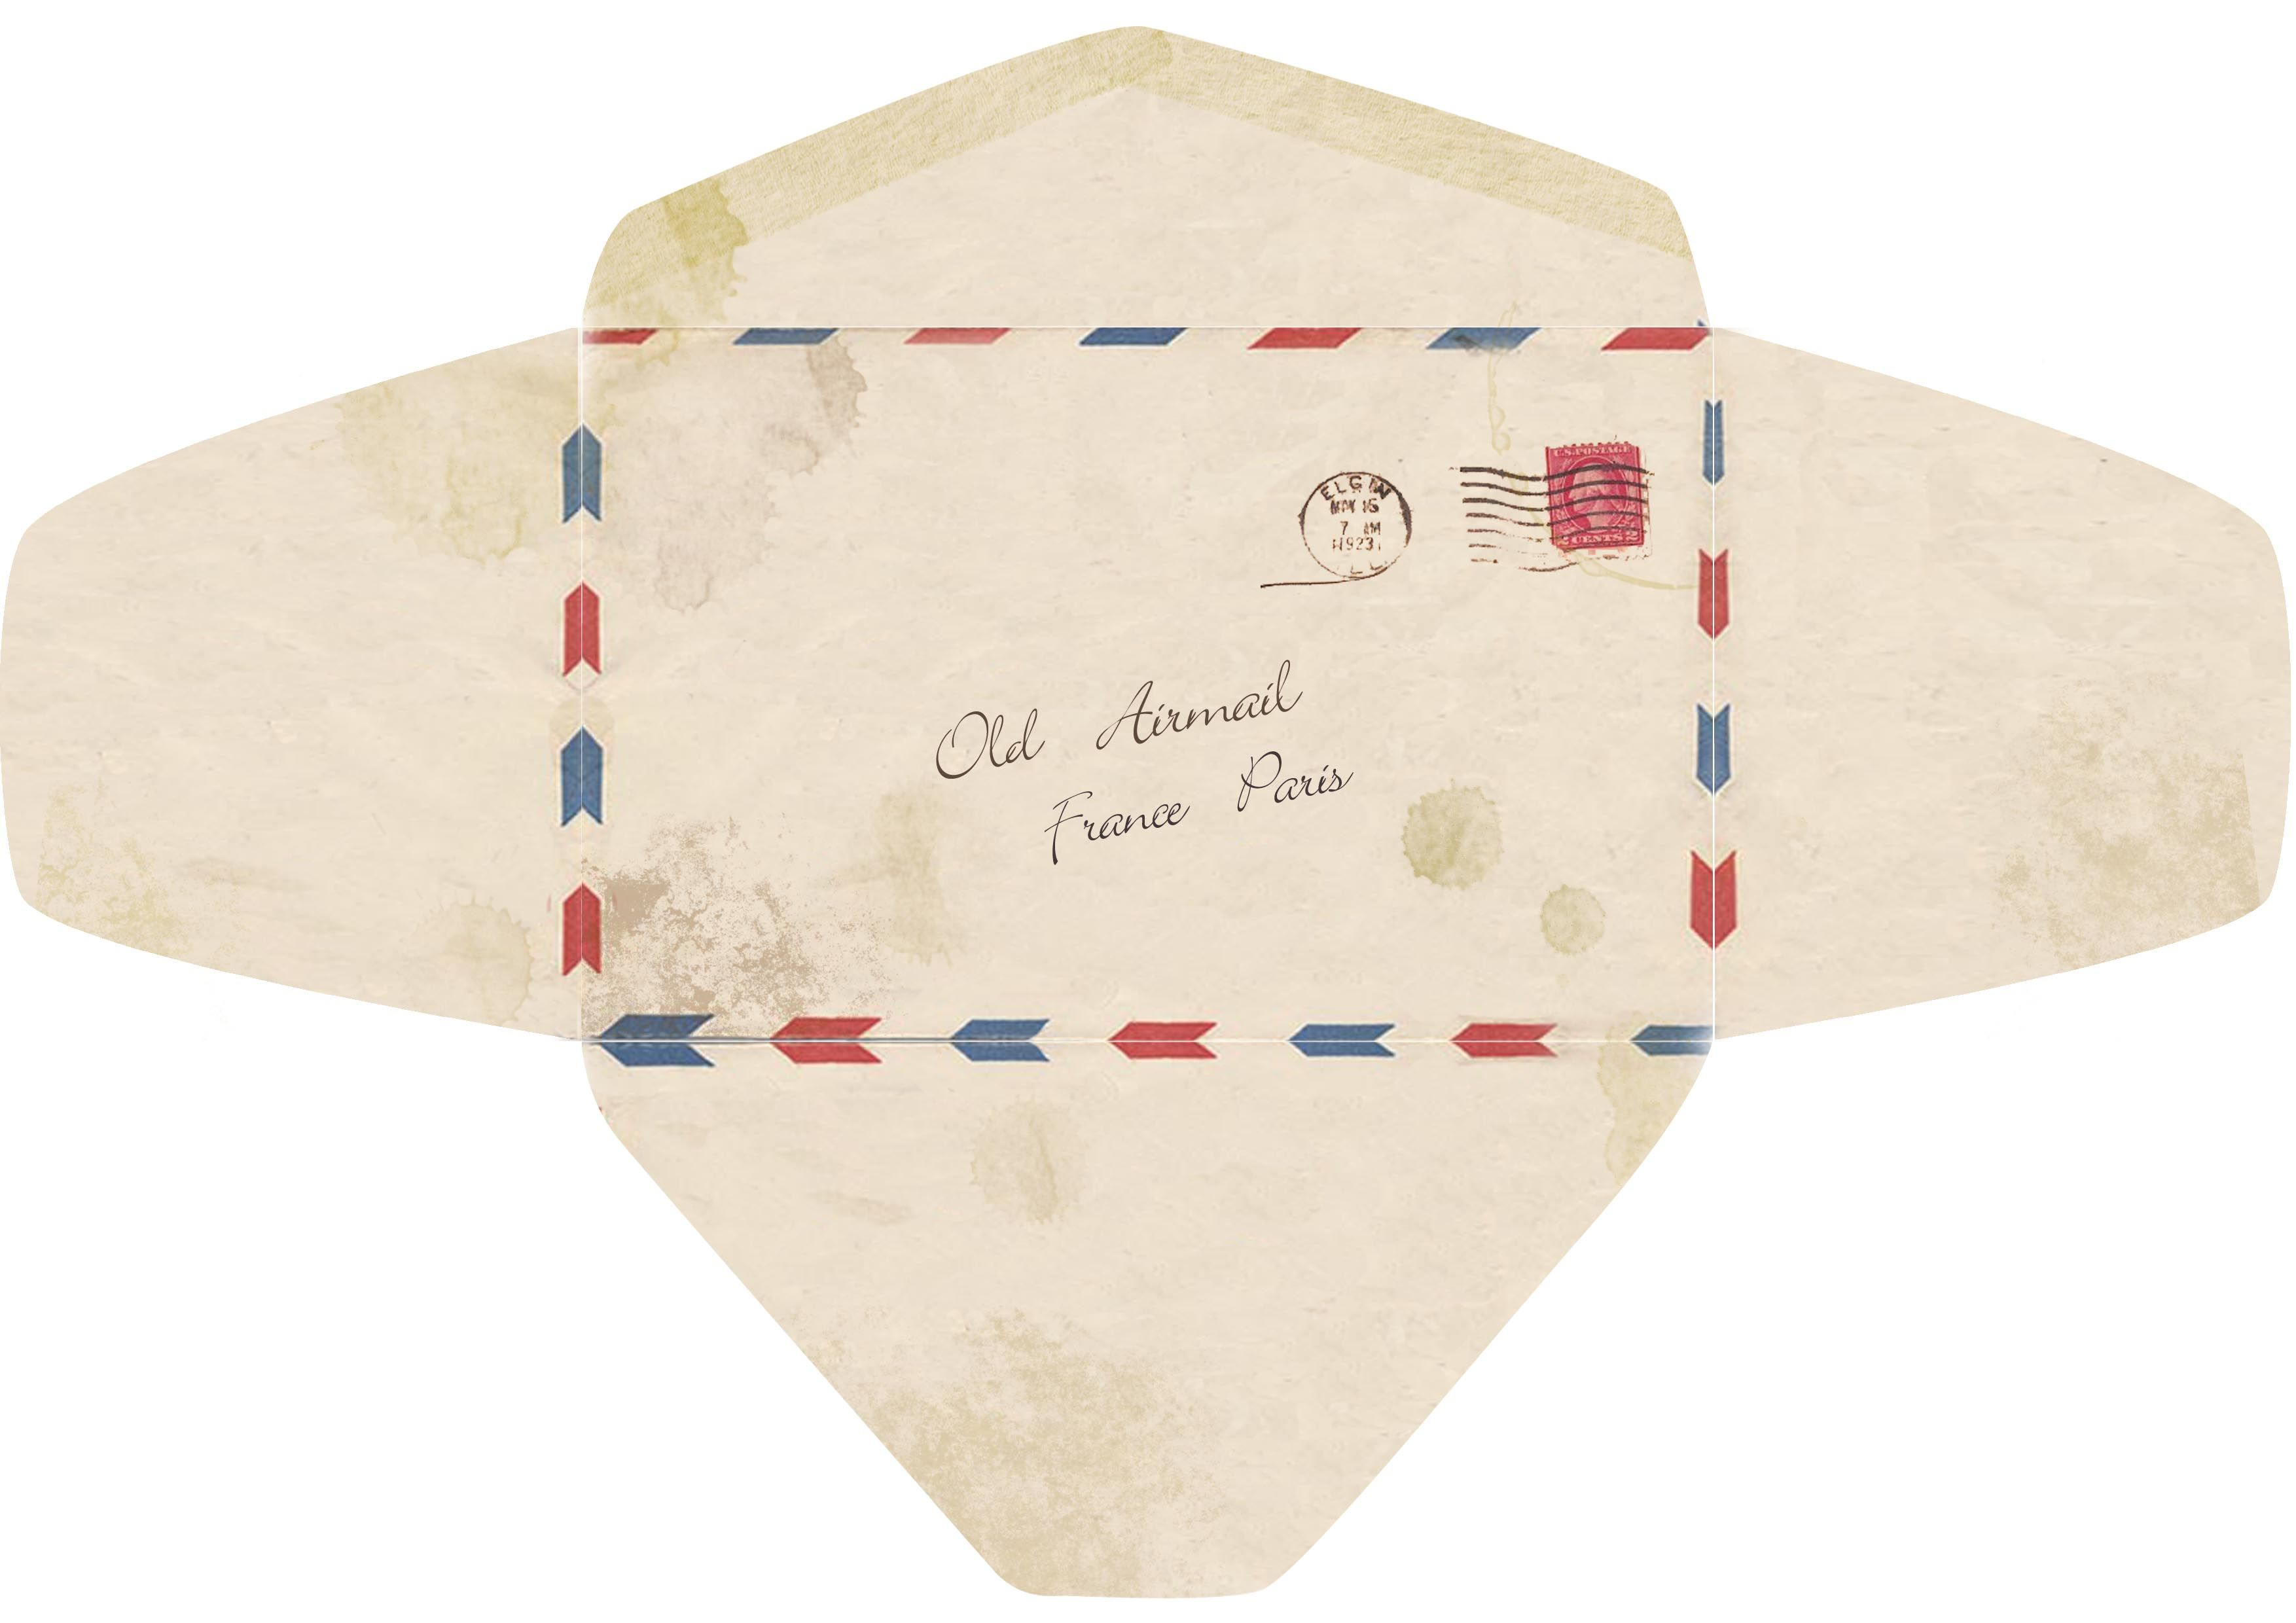 Template For An Old Fashioned Airmail Envelope.